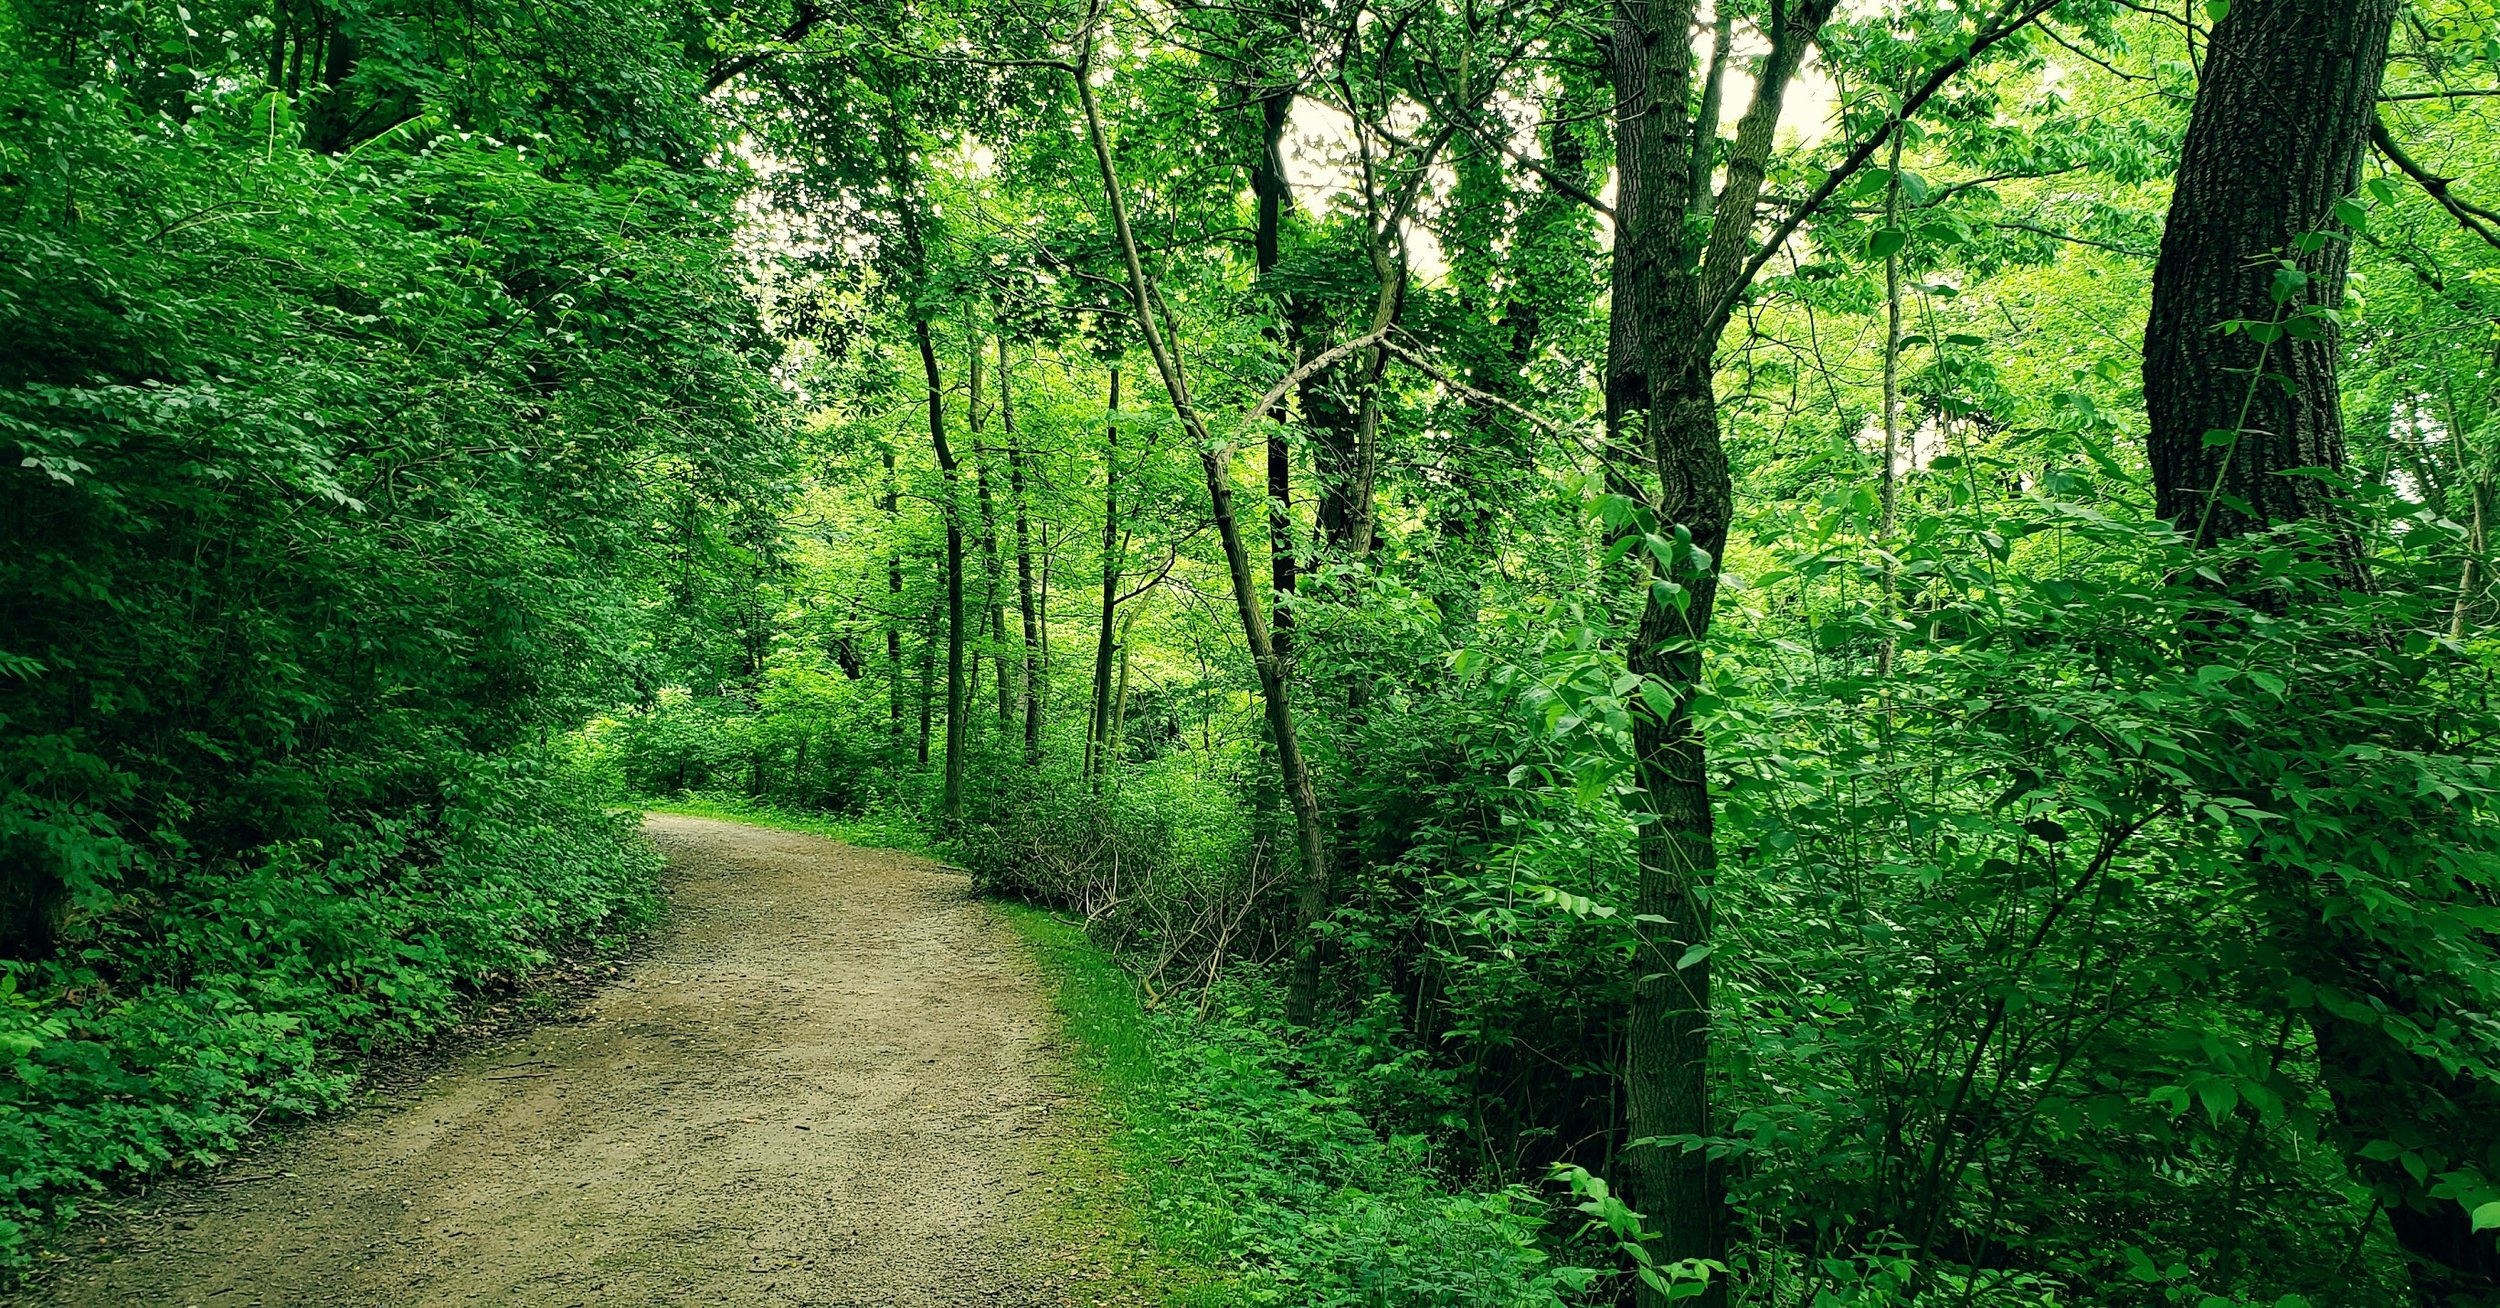 Trail at Side Cut Park in Maumee, Ohio, one of my favorite parks to go to when visiting my family.